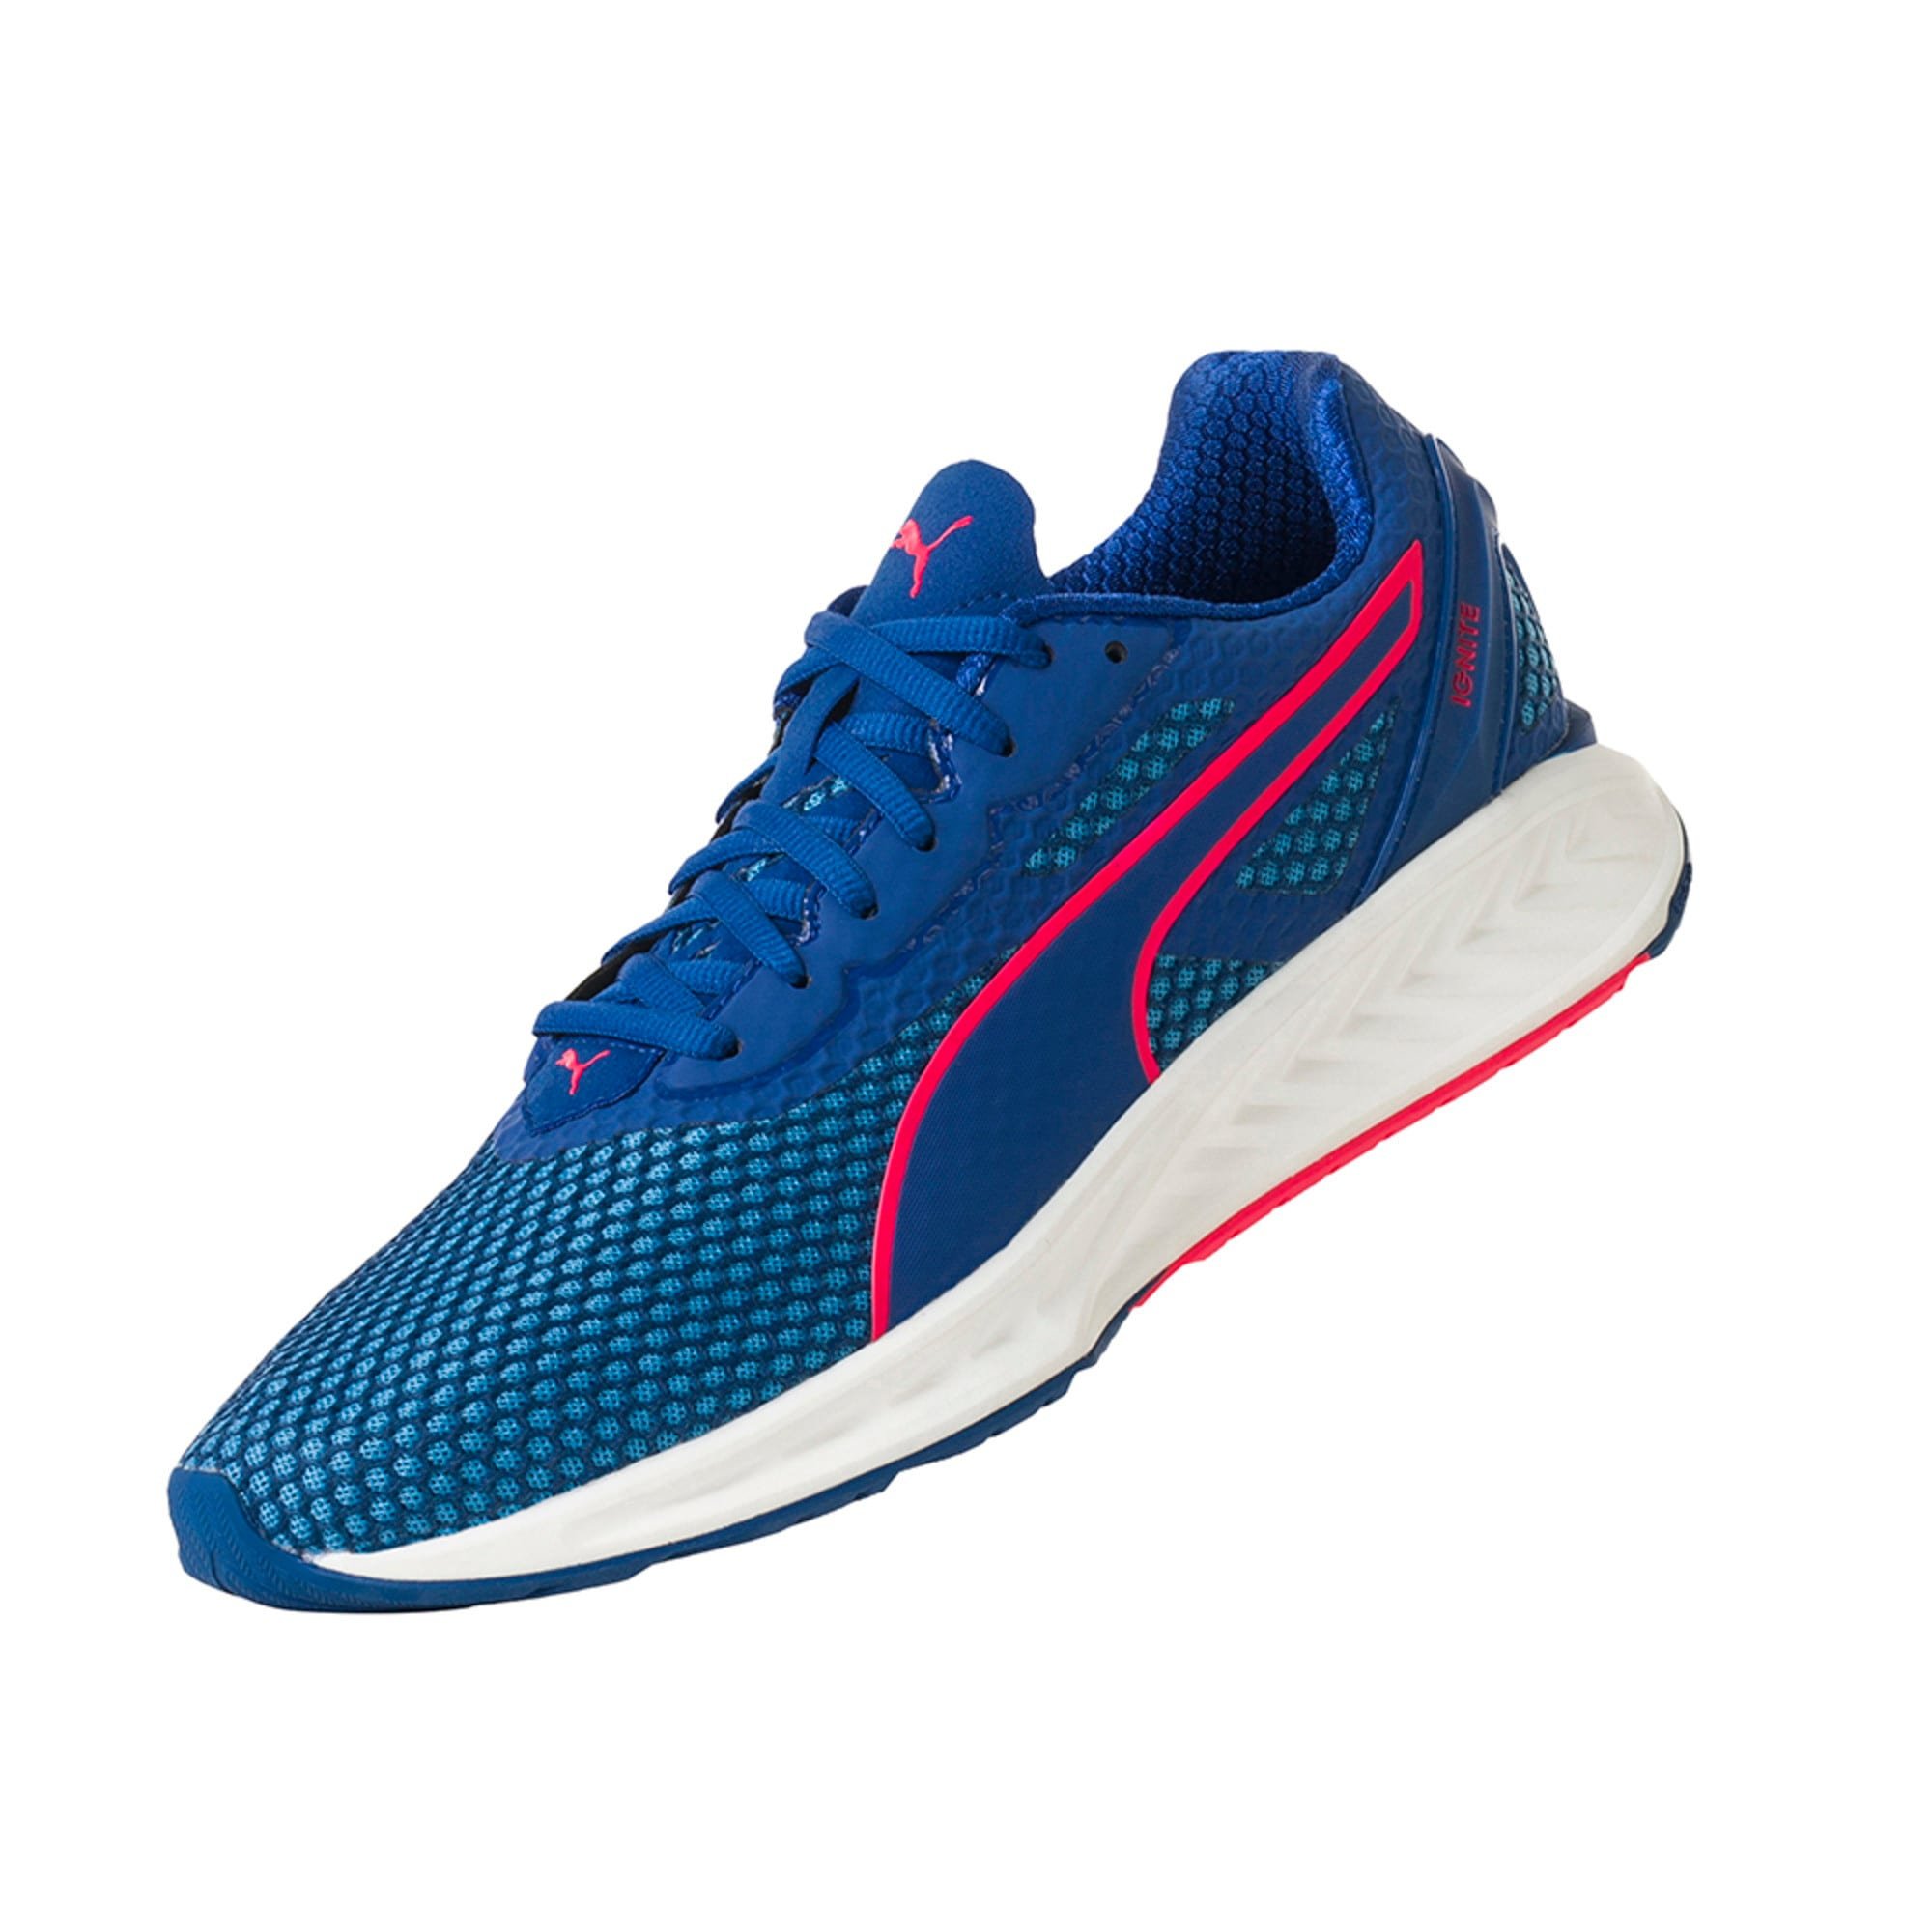 Thumbnail 7 of IGNITE 3 Men's Running Shoes, TRUEBLUE-BLUEDANUBE-Plasma, medium-IND